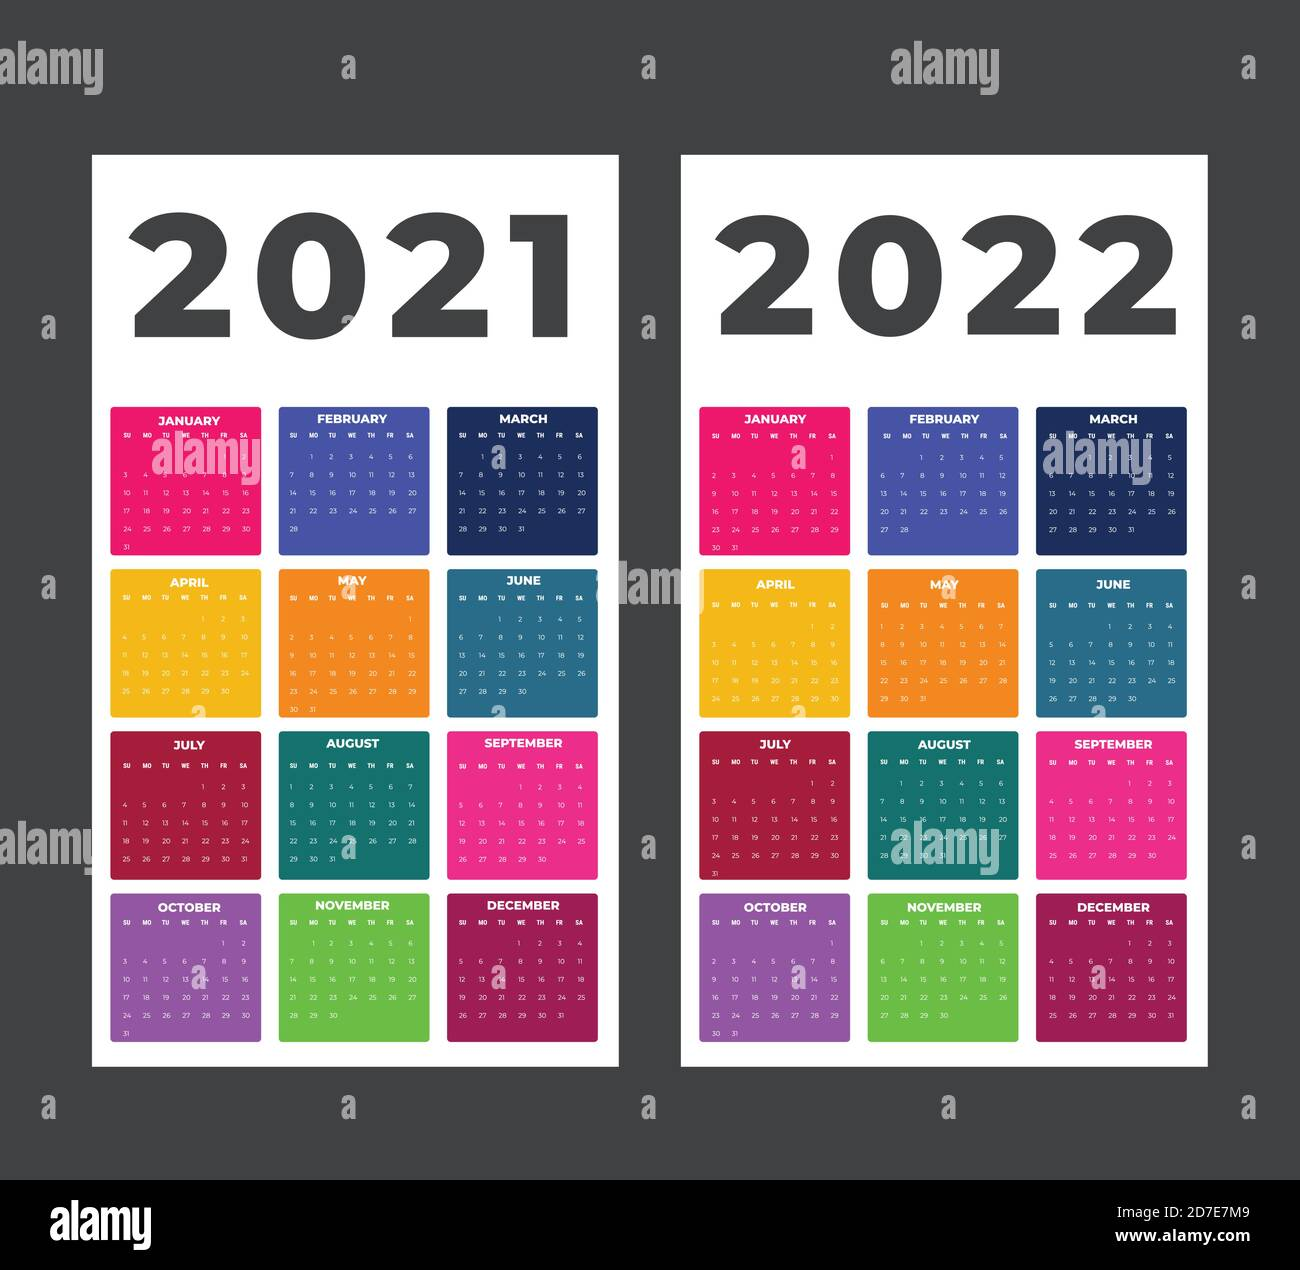 Calendario Tim Cup 2021-2022 Page 3   February 2022 High Resolution Stock Photography and